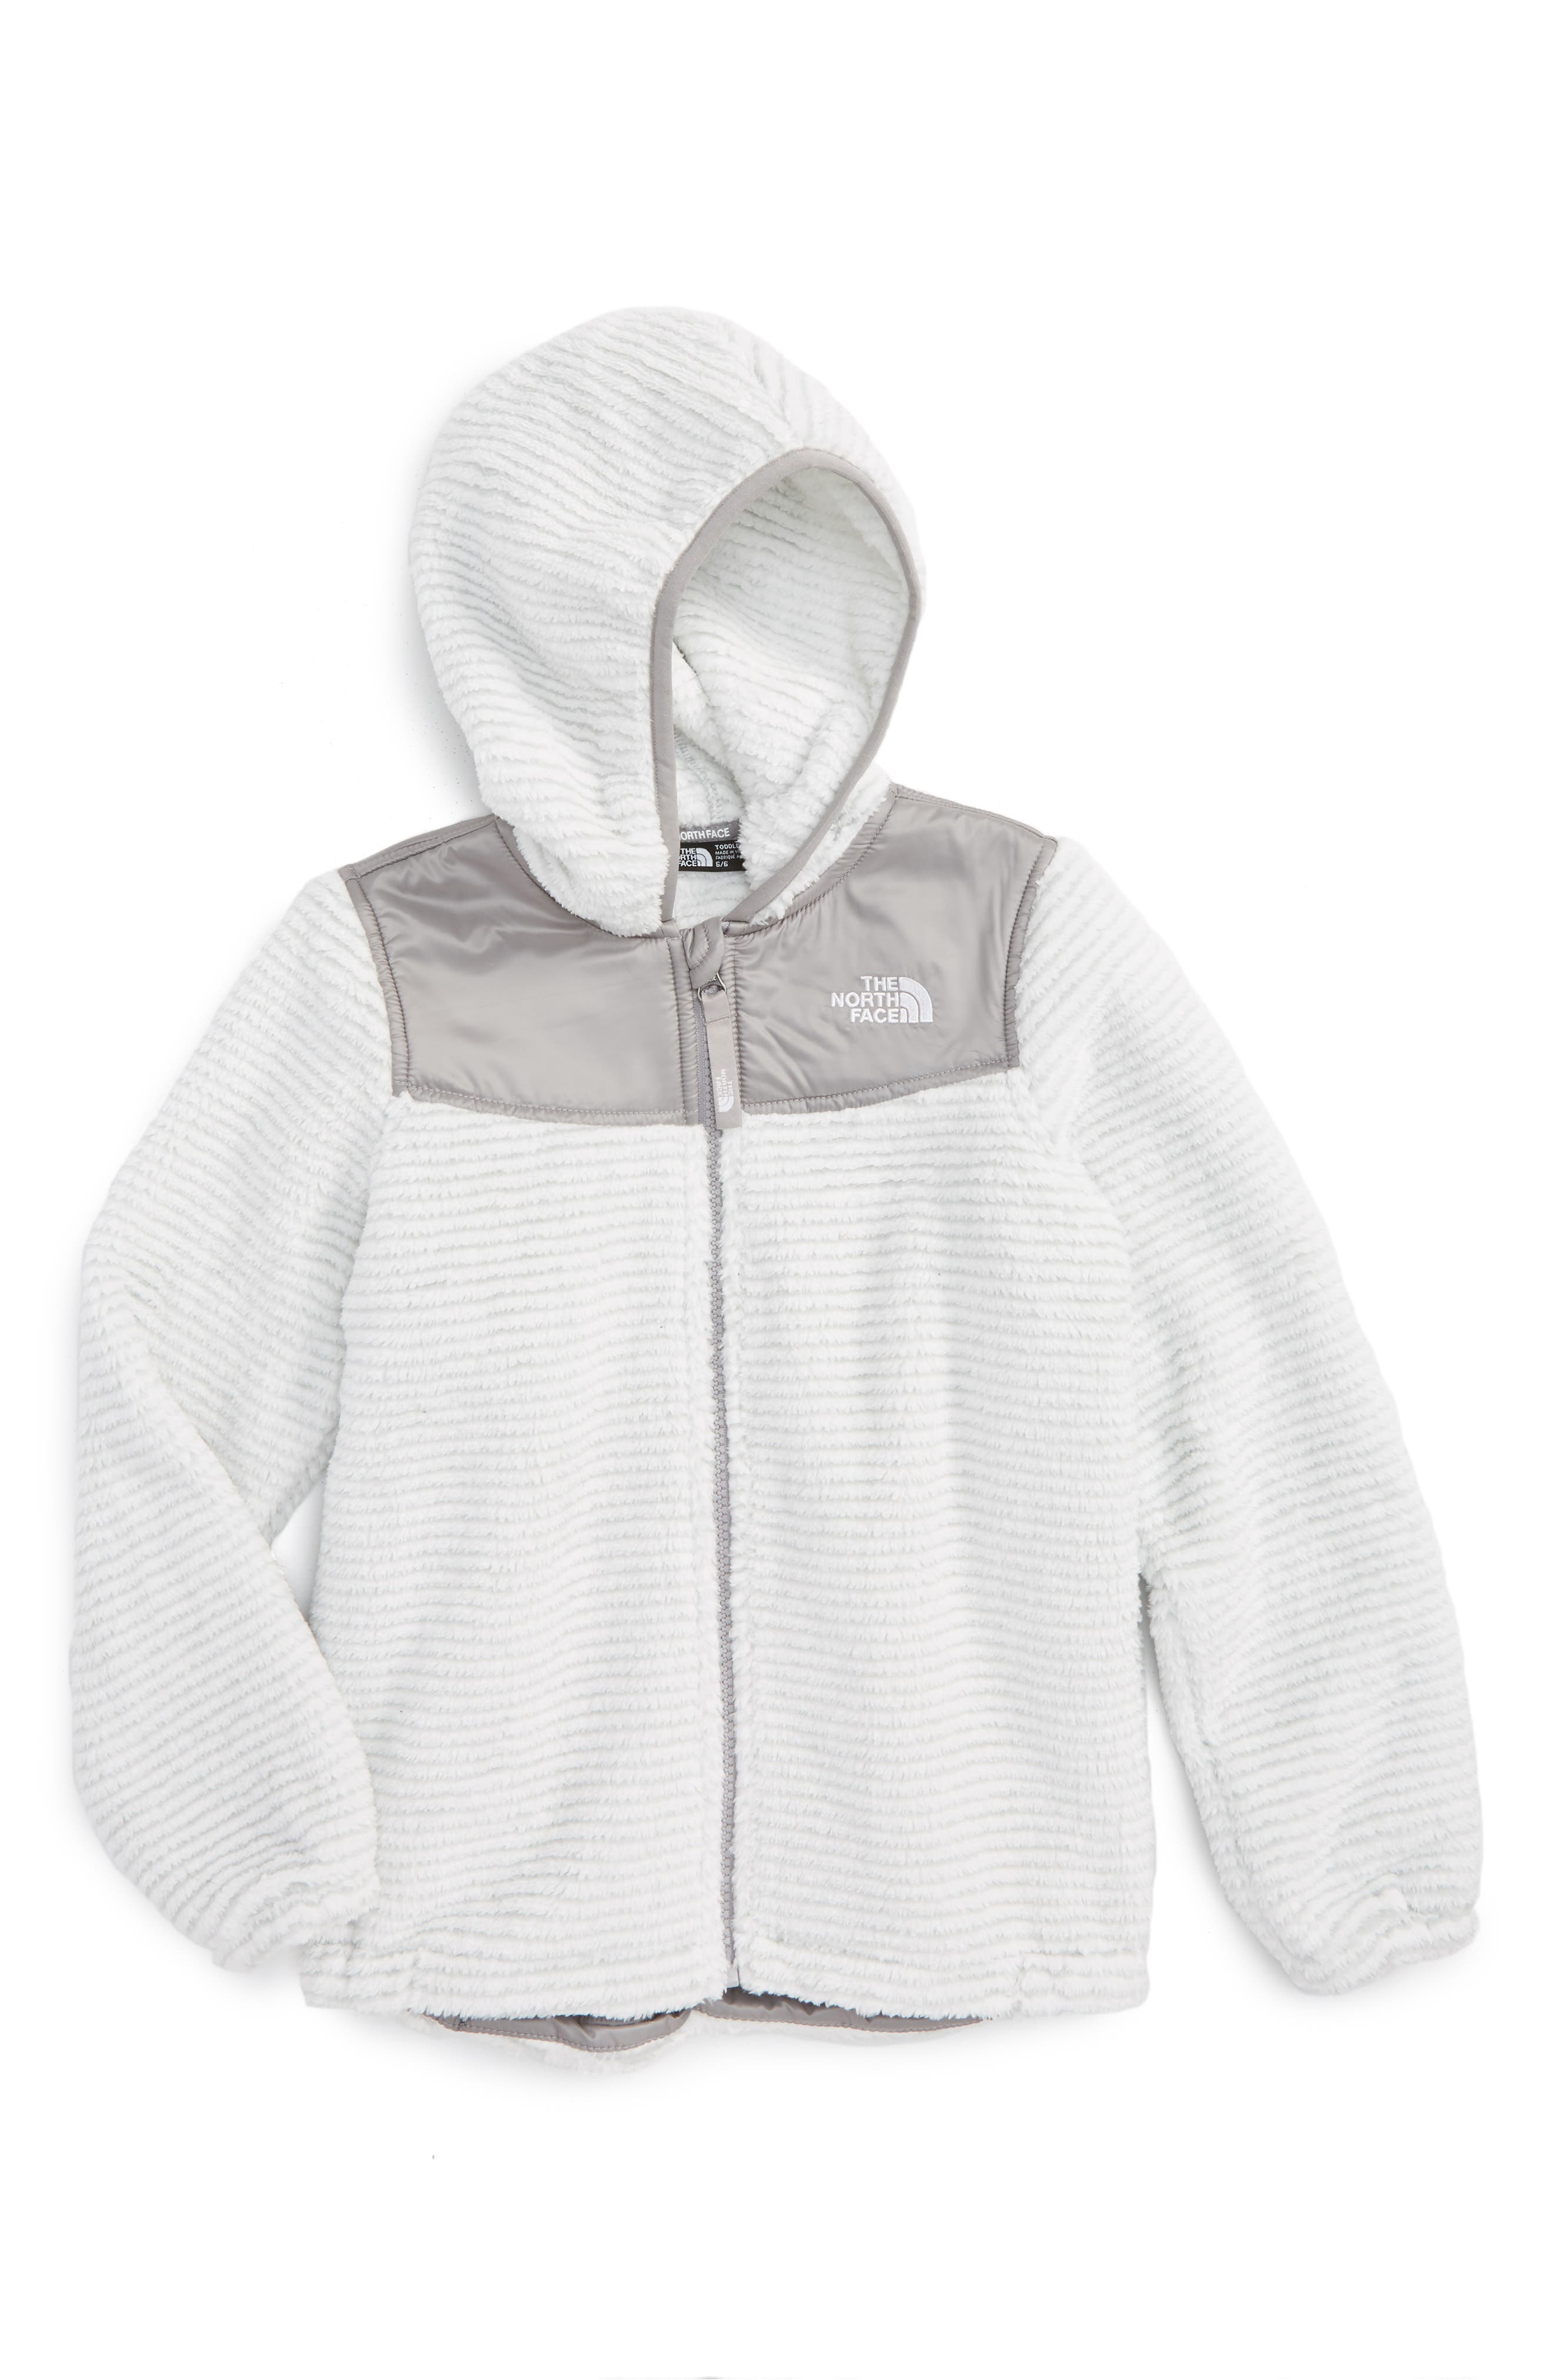 Main Image - The North Face Oso Fleece Hoodie (Toddler Girls & Little Girls)